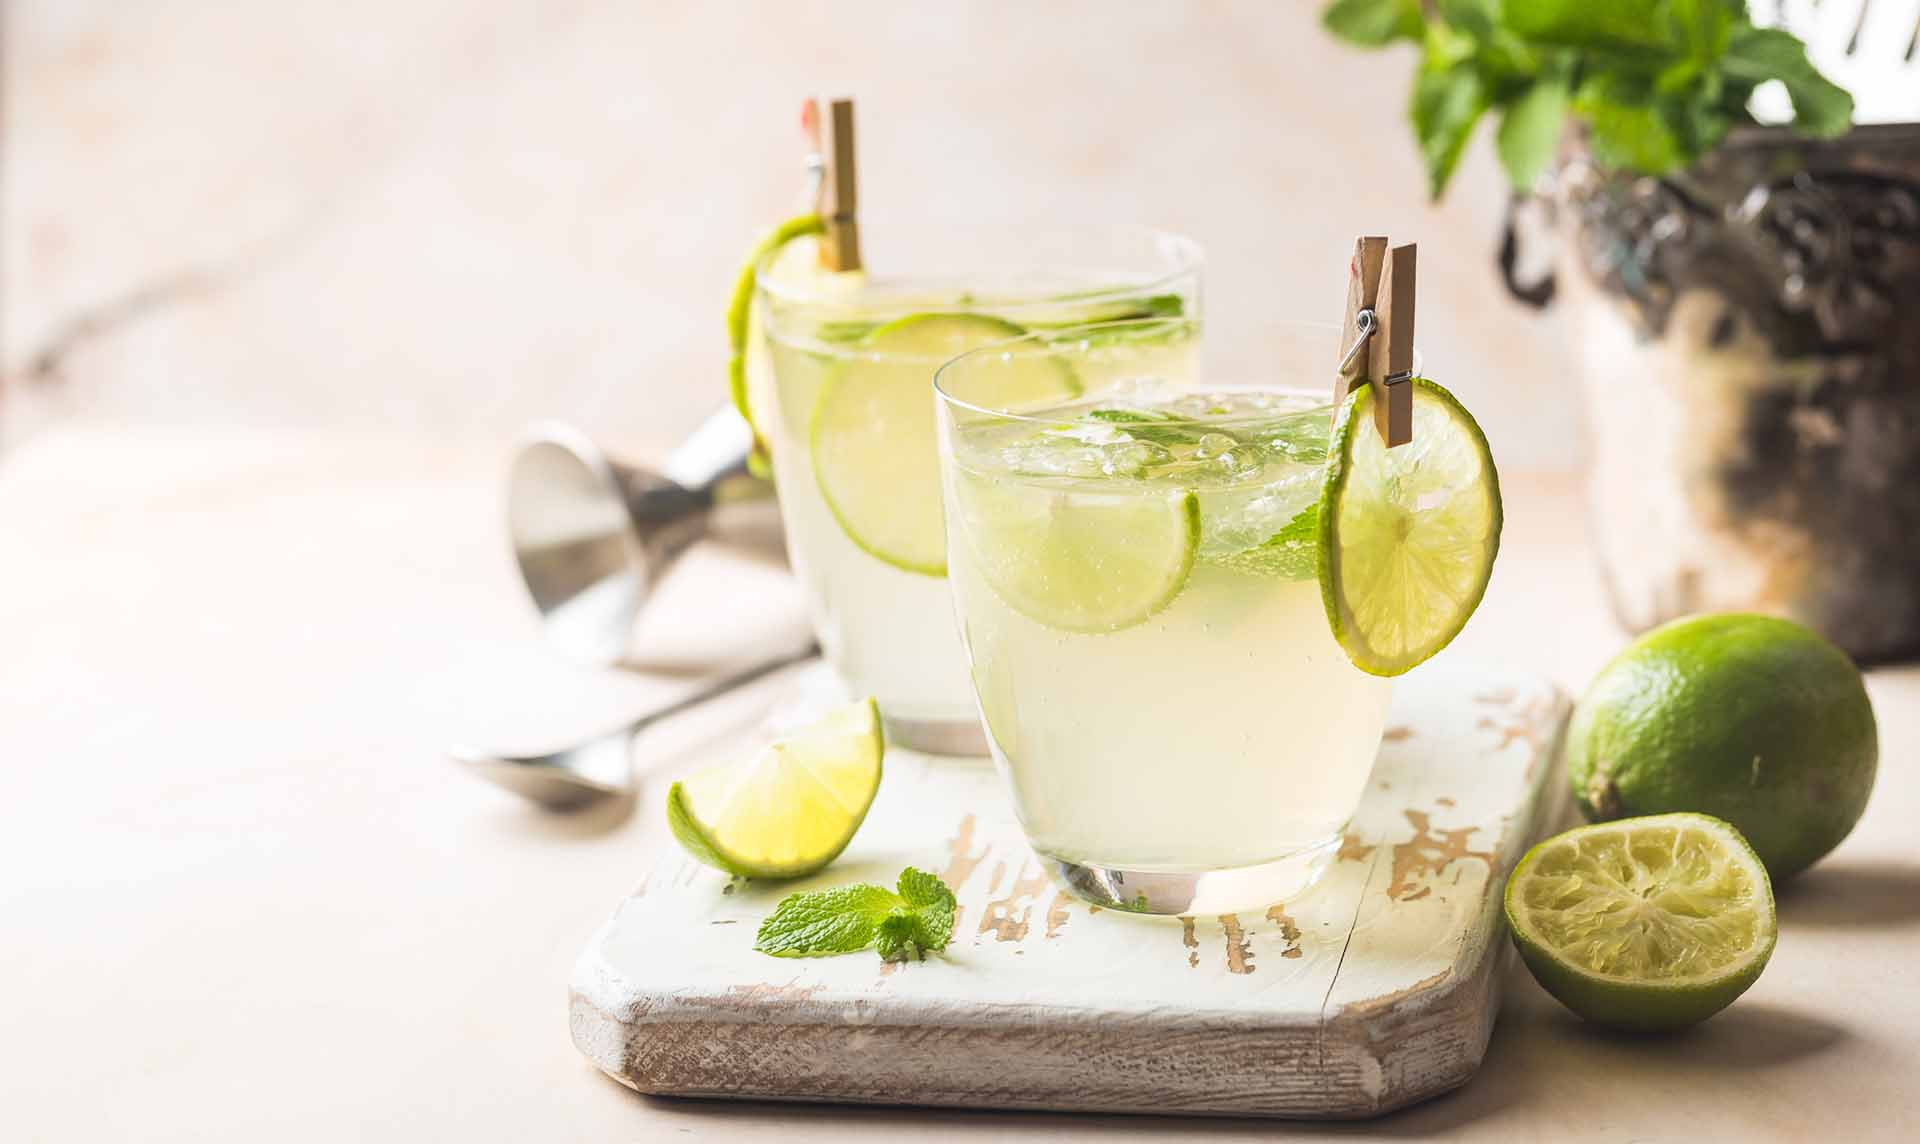 Mint and lemon cooler recipe image